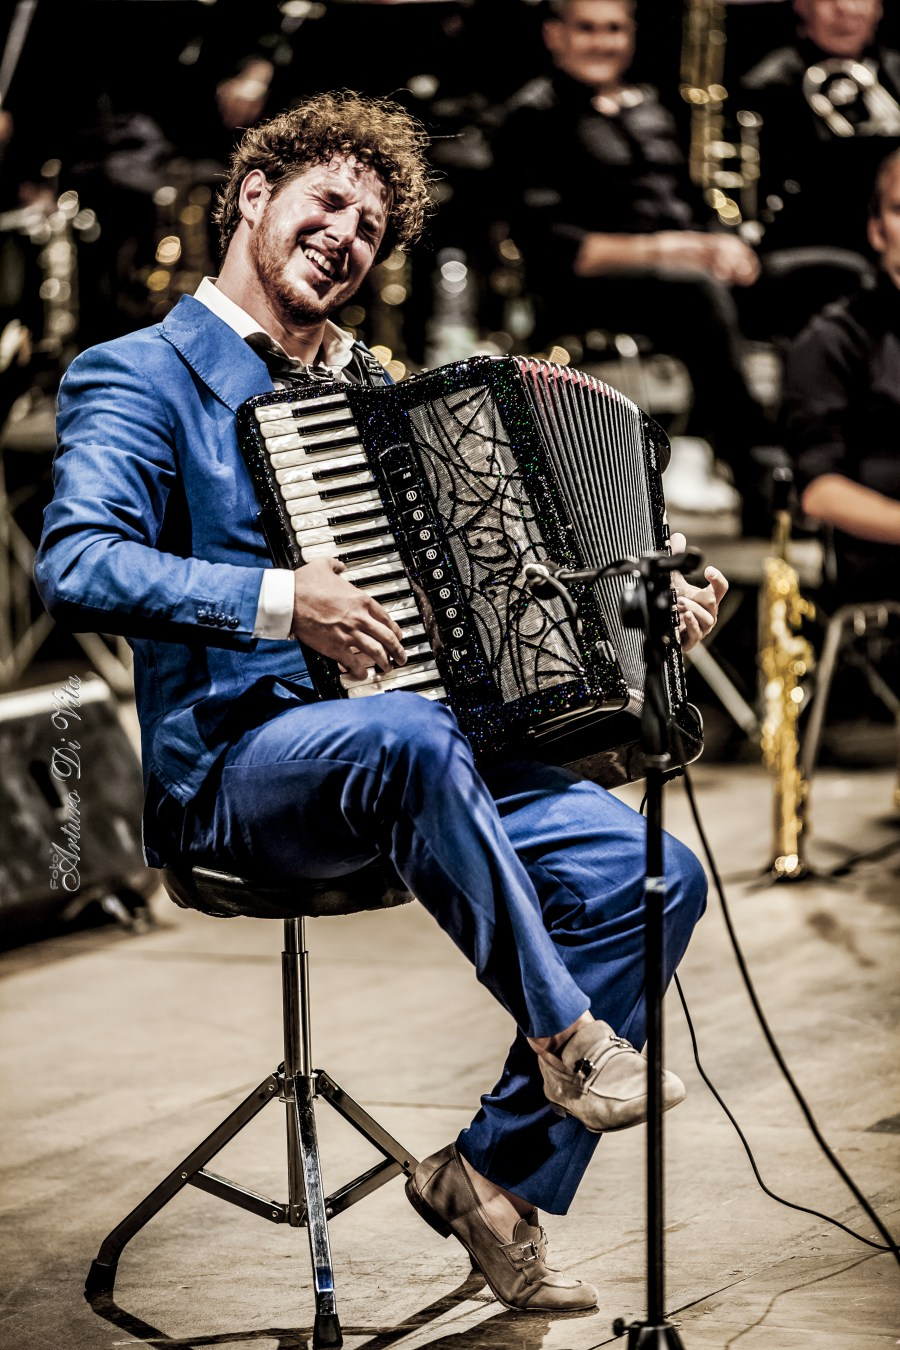 Pietro Adragna - Cotati Accordion Festival